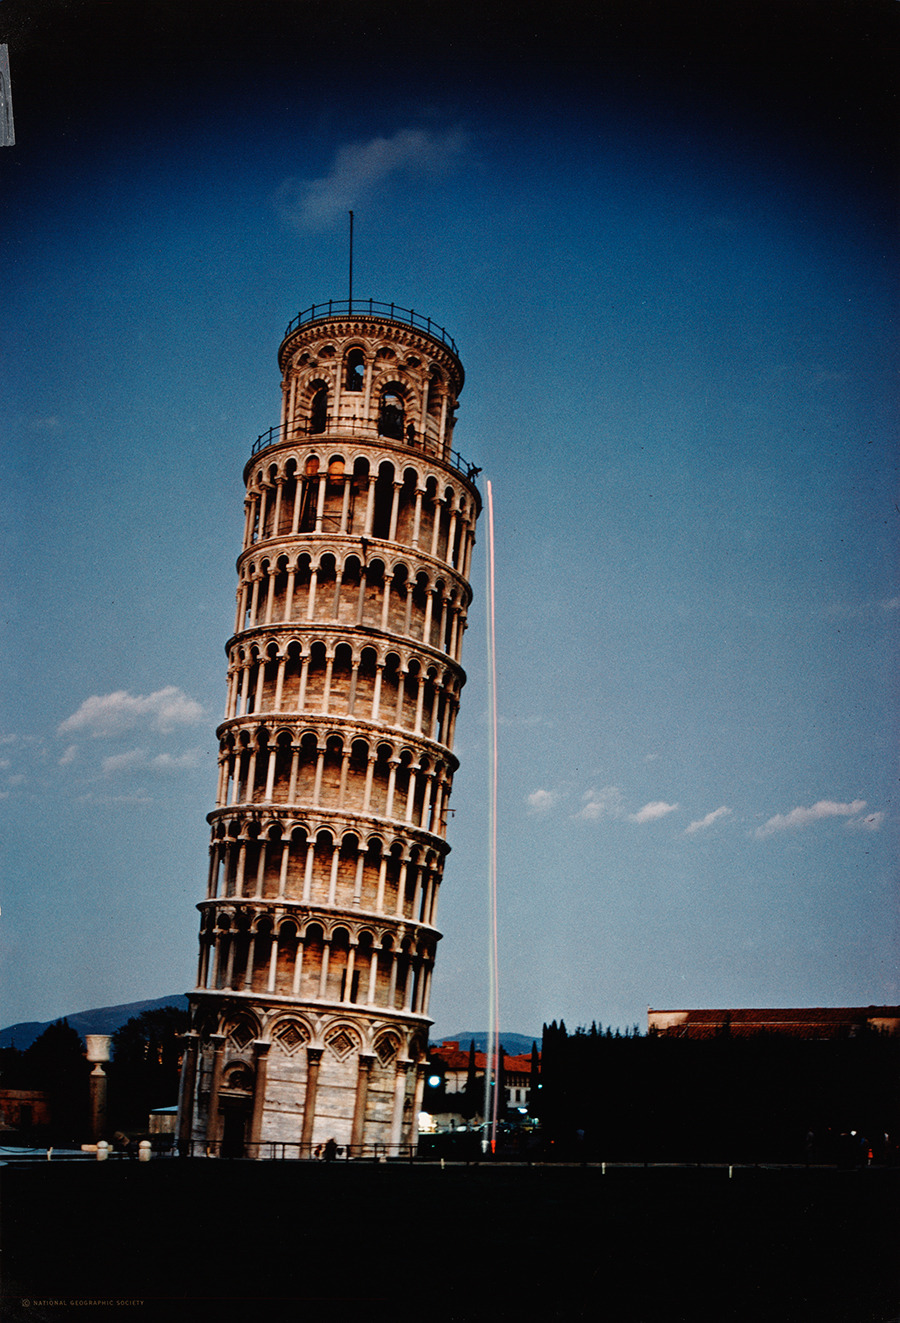 Two balls dropped from the tower in Pisa replay Galileo's experiment, November 1974.Photograph by Luis Marden, National Geographic